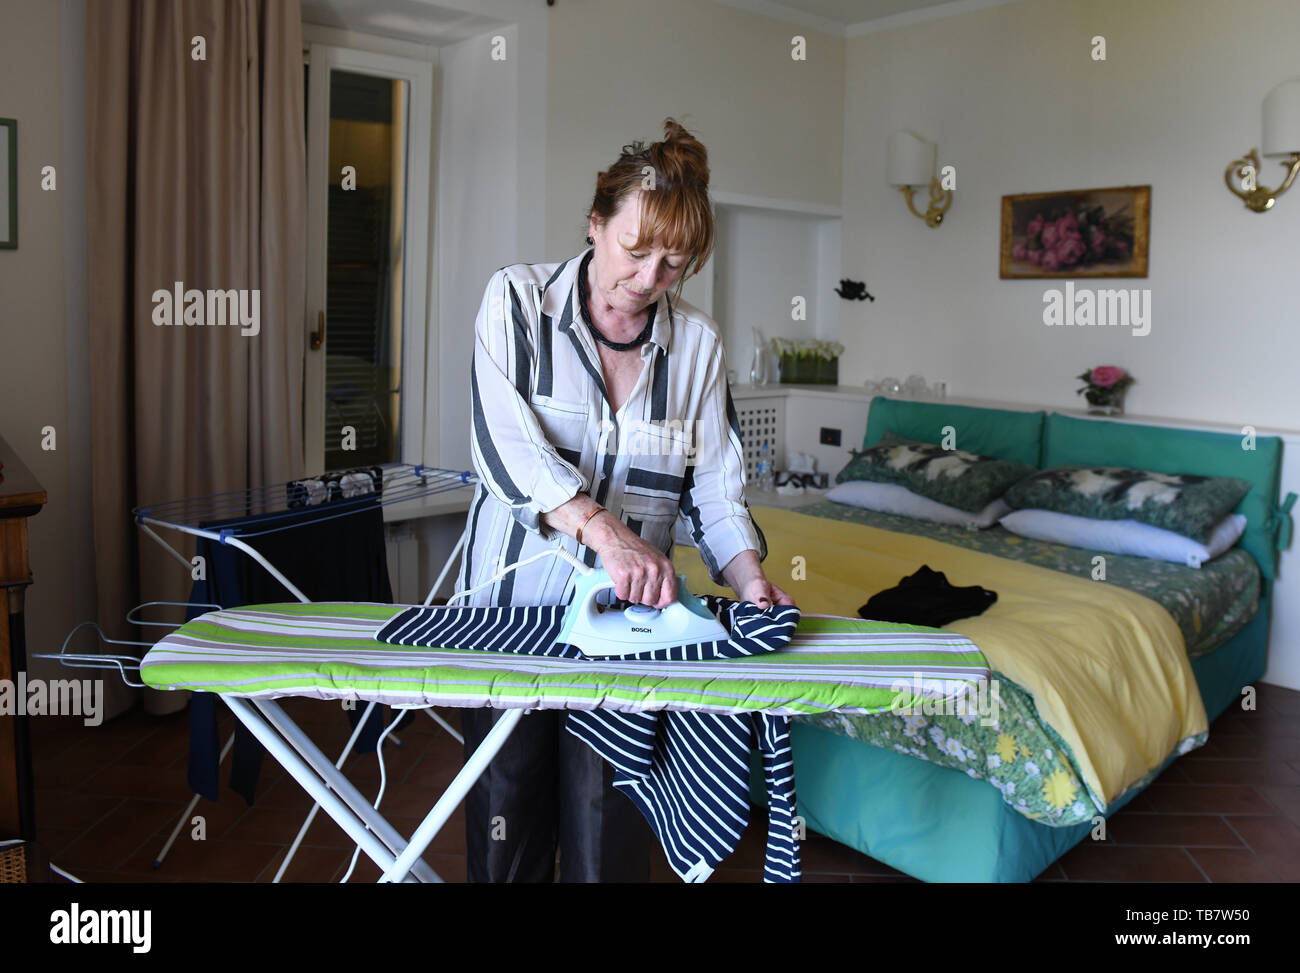 Woman ironing clothes on holiday - Stock Image